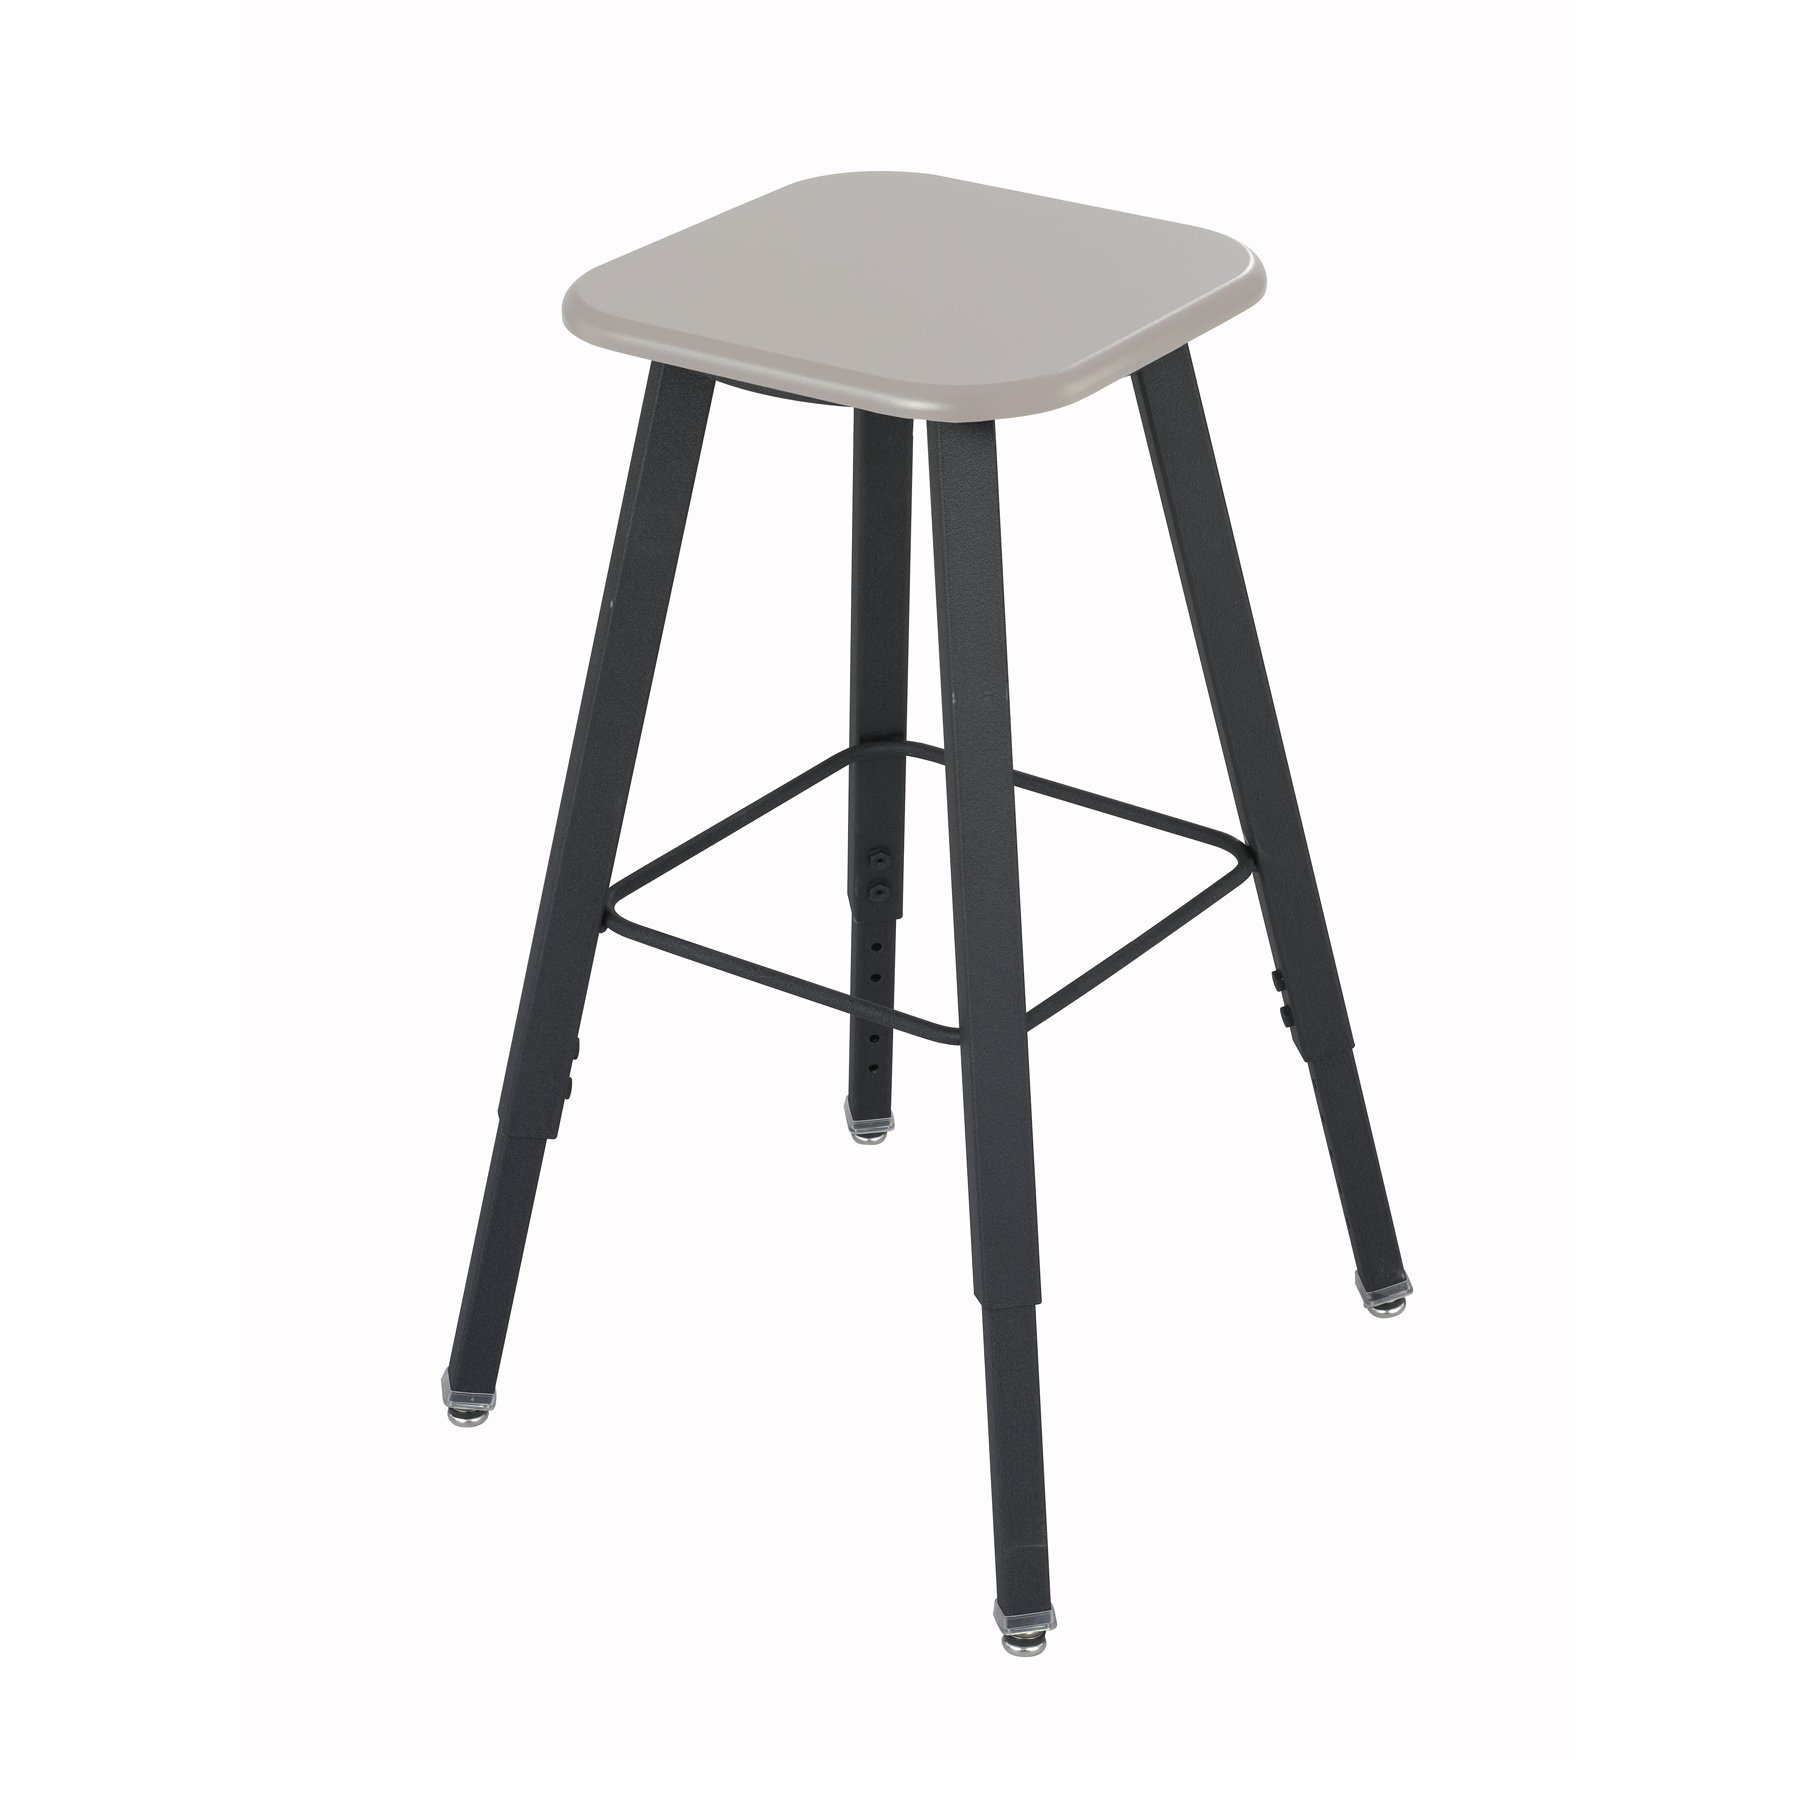 Safco Products 1205BE Alphabetter Stool for Alphabetter Stand-Up Desk (sold separately), Black Frame/Beige Seat